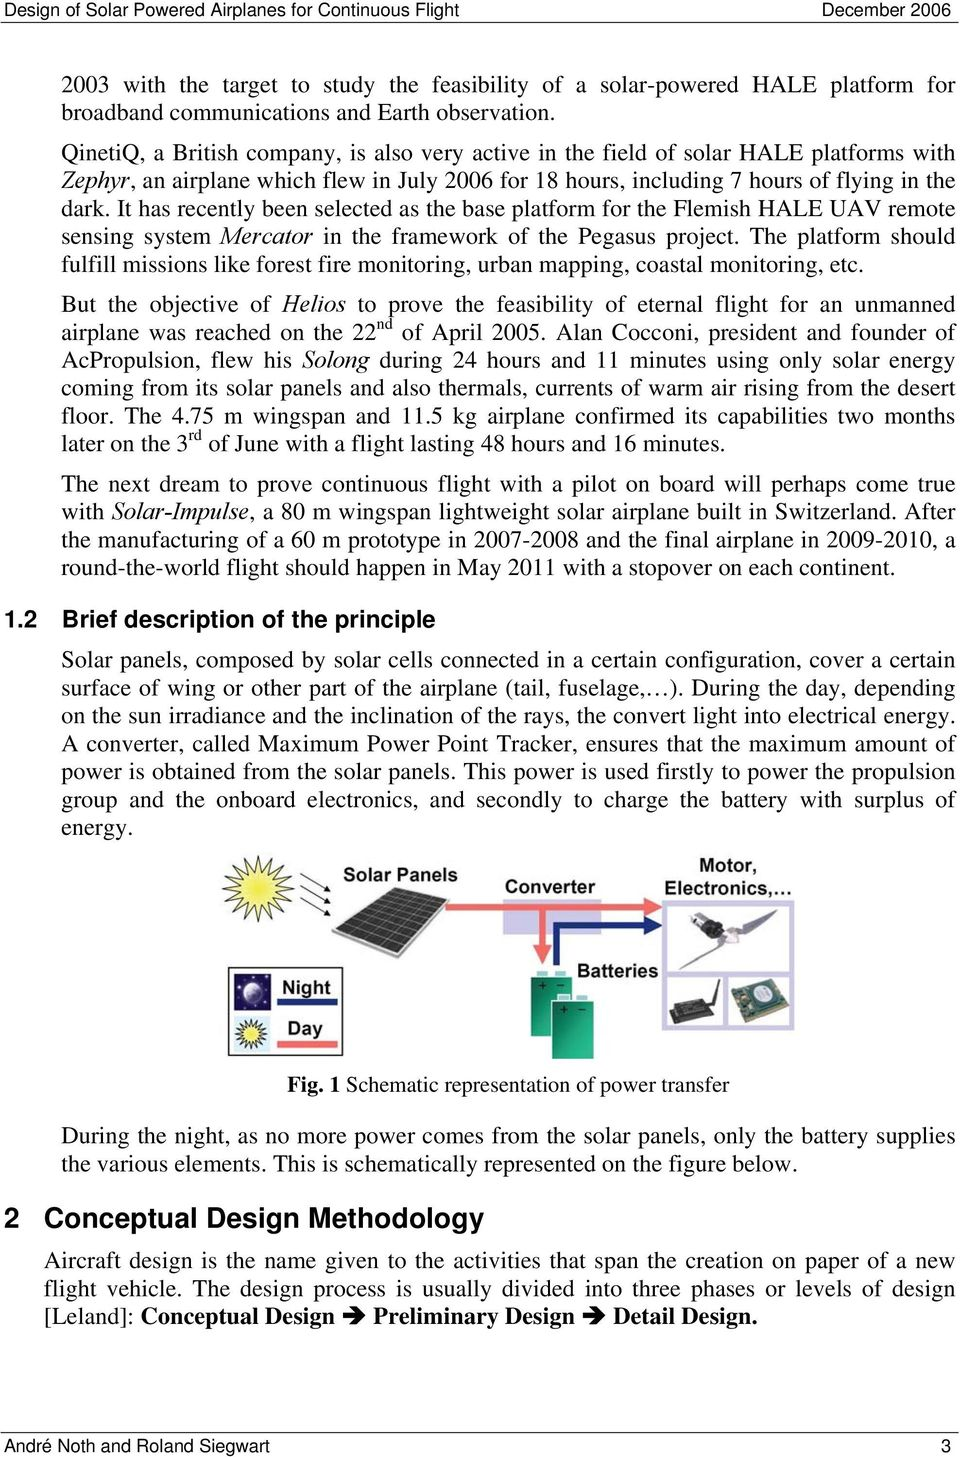 Design of Solar Powered Airplanes for Continuous Flight - PDF